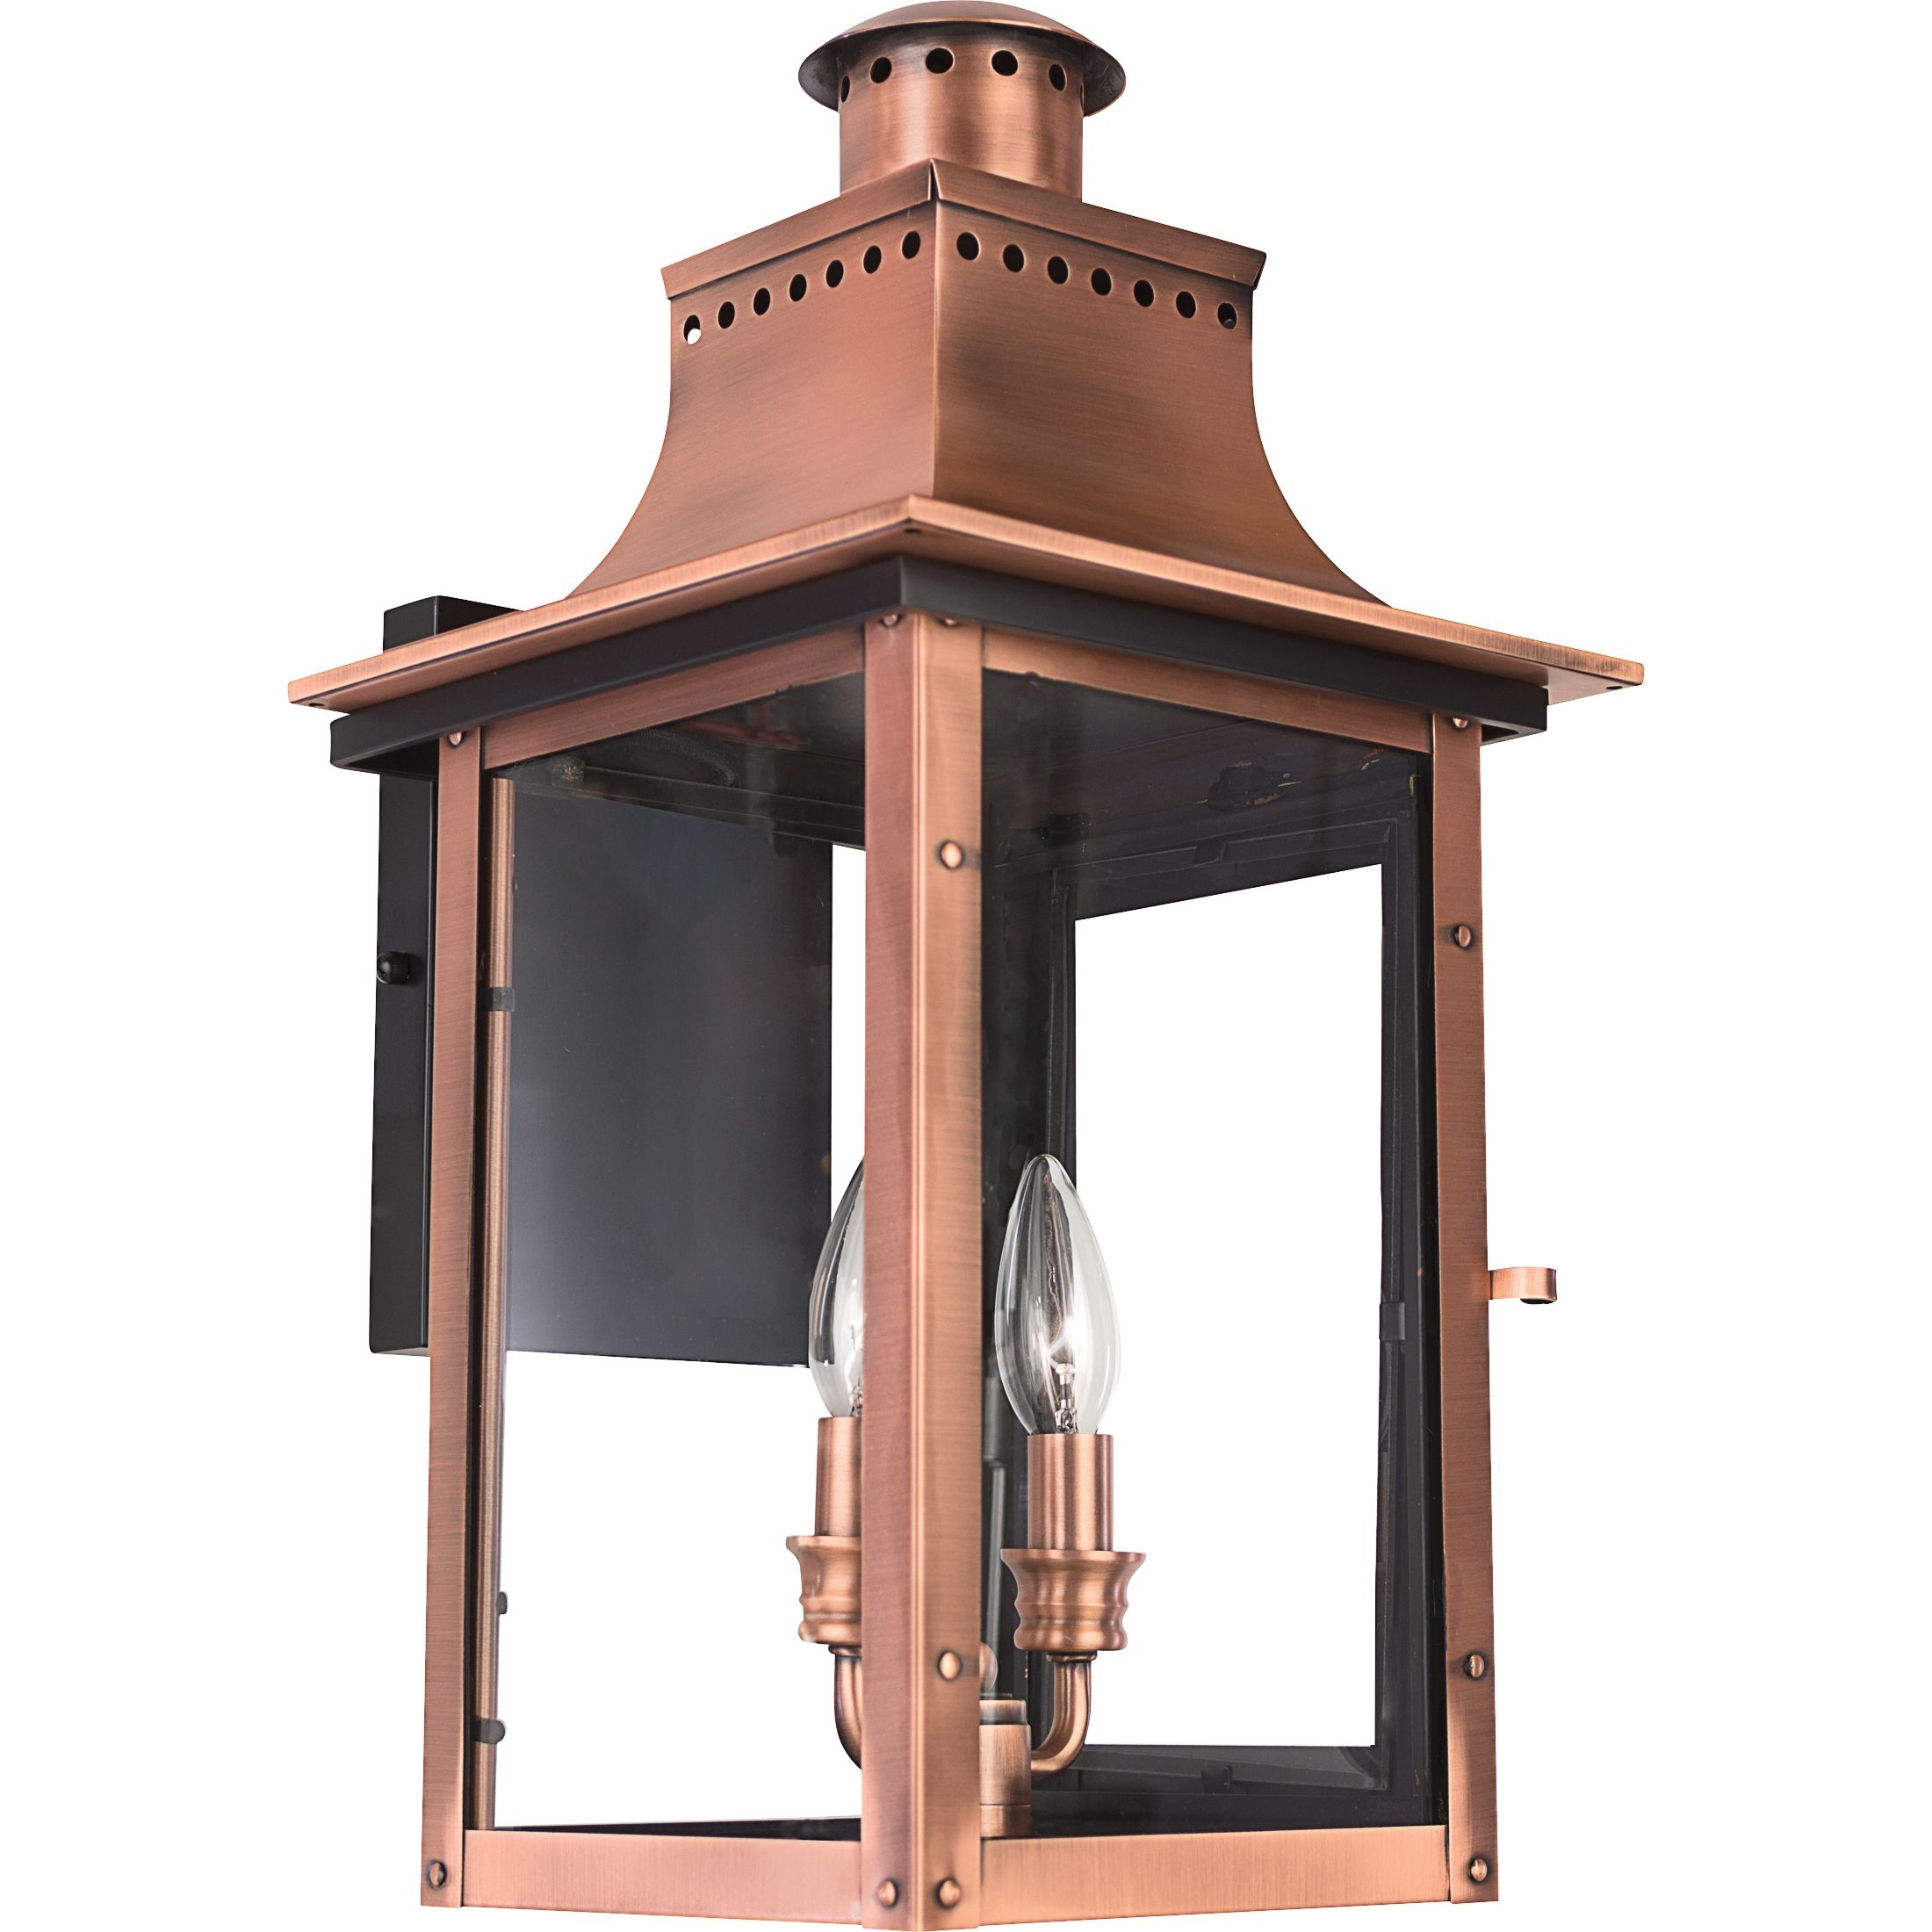 Chalmers Outdoor Lantern | Quoizel In Copper Outdoor Lanterns (View 2 of 20)